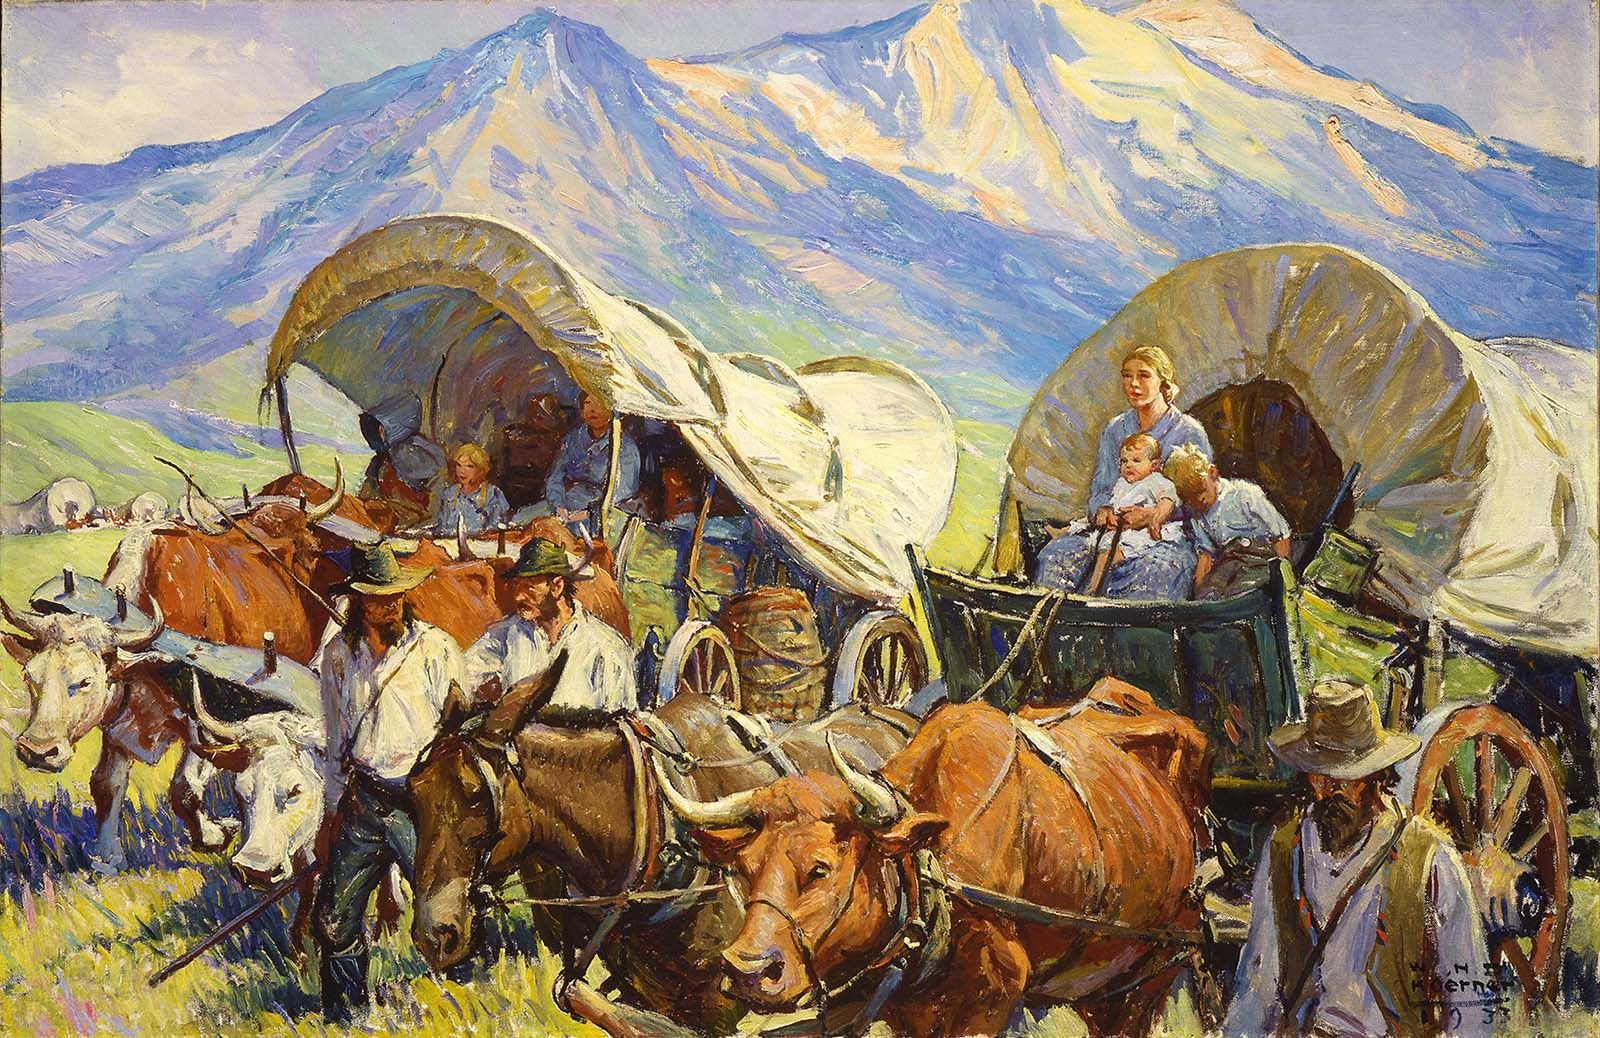 """The placid look on these pioneers' faces belies the trials of traveling West. W.H.D. Koerner (1878-1938). """"The Road to Oregon (Lone Travel, or Travel in Groups of a Few, as Andy Had Known it, Was Practically a Thing of the Past),"""" 1933. Oil on canvas. Gift of Ruth Koerner Oliver. 6.92.2"""